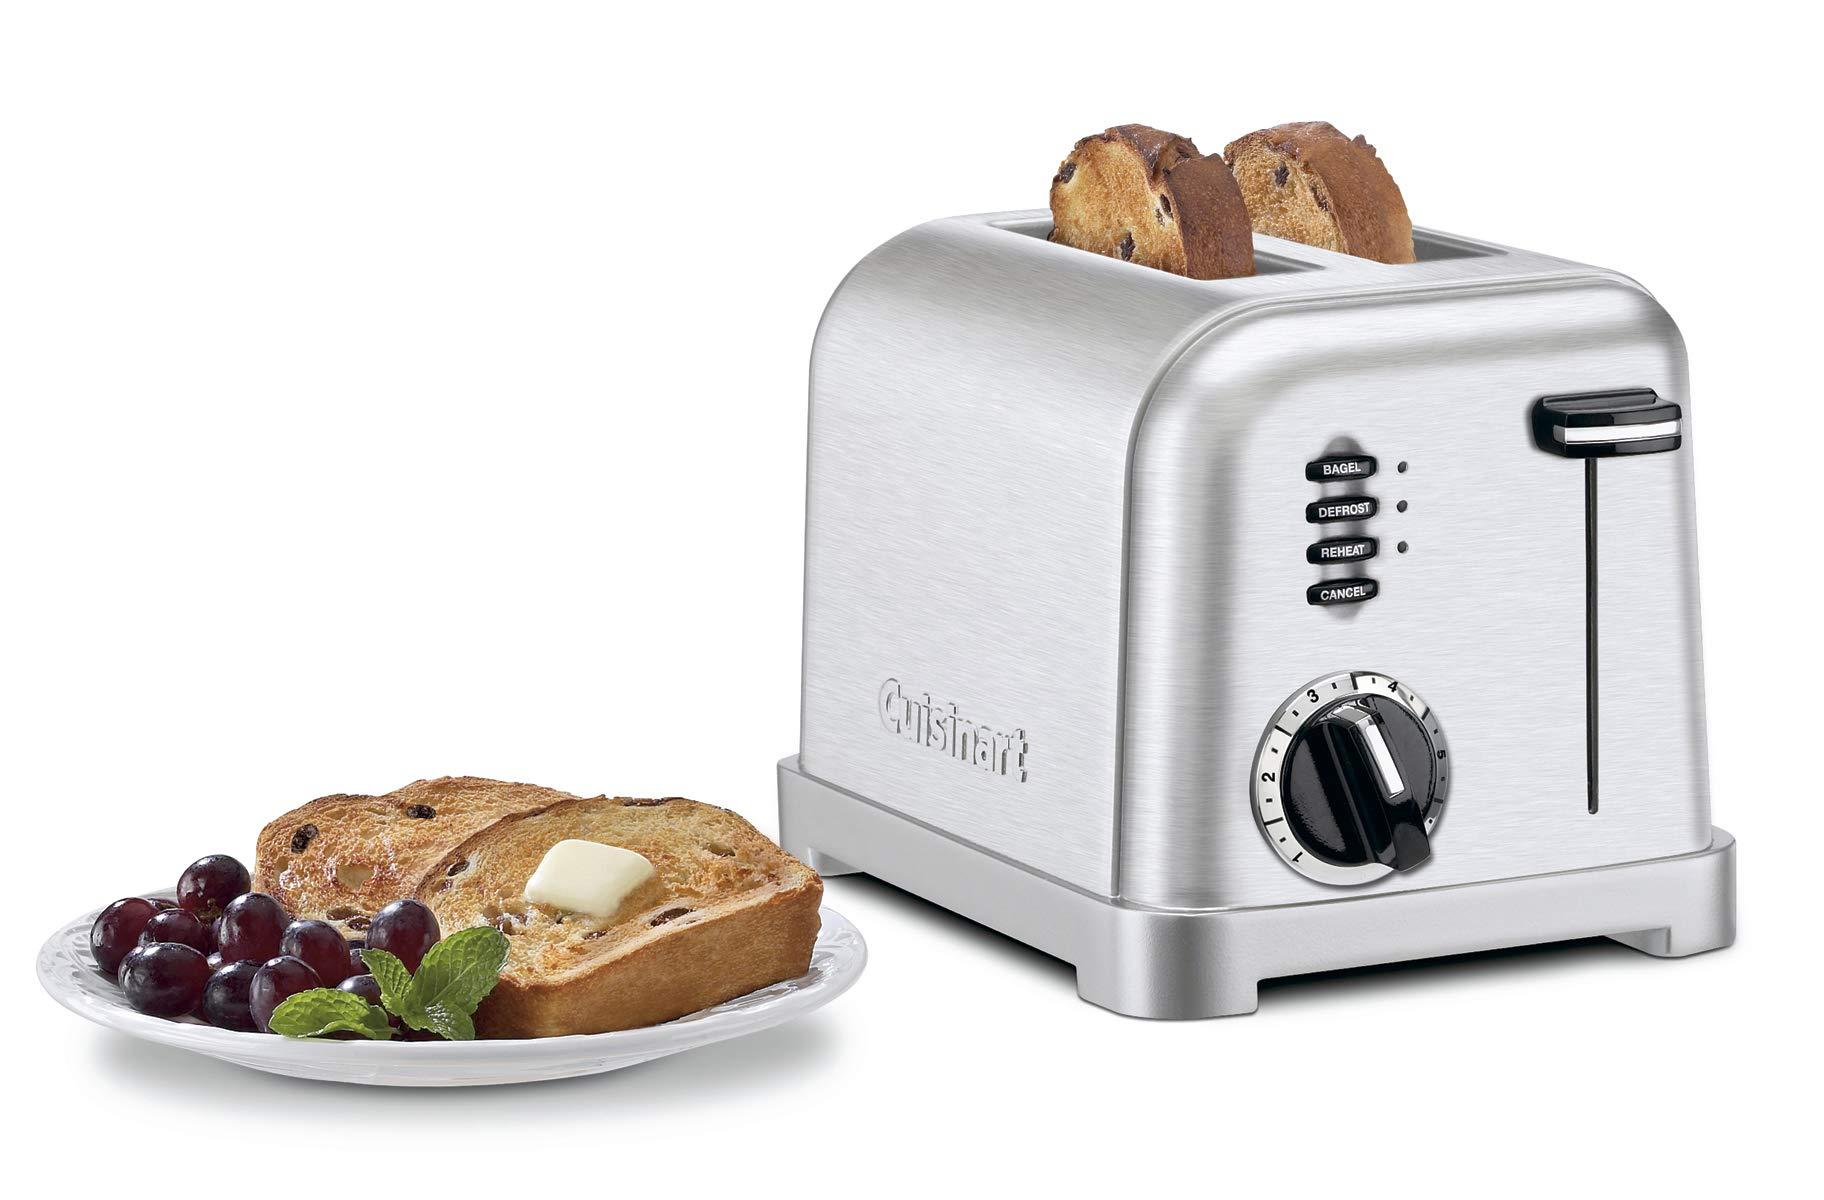 Cuisinart Metal Classic 2-Slice toaster, Brushed Stainless